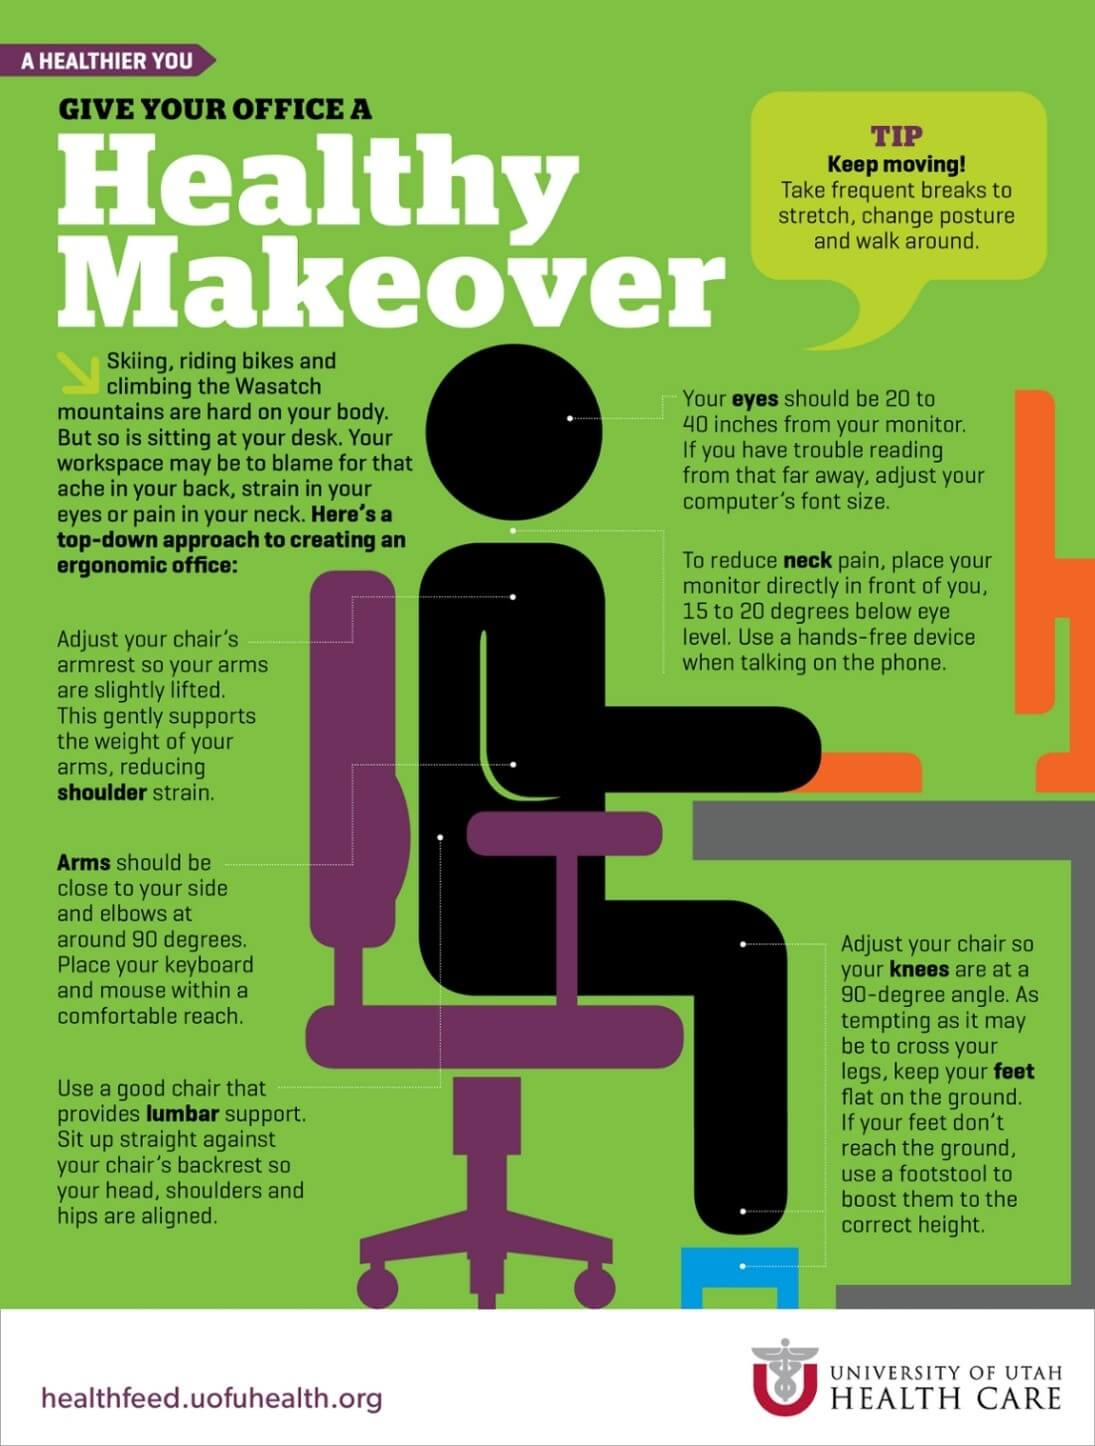 healthy-makeover